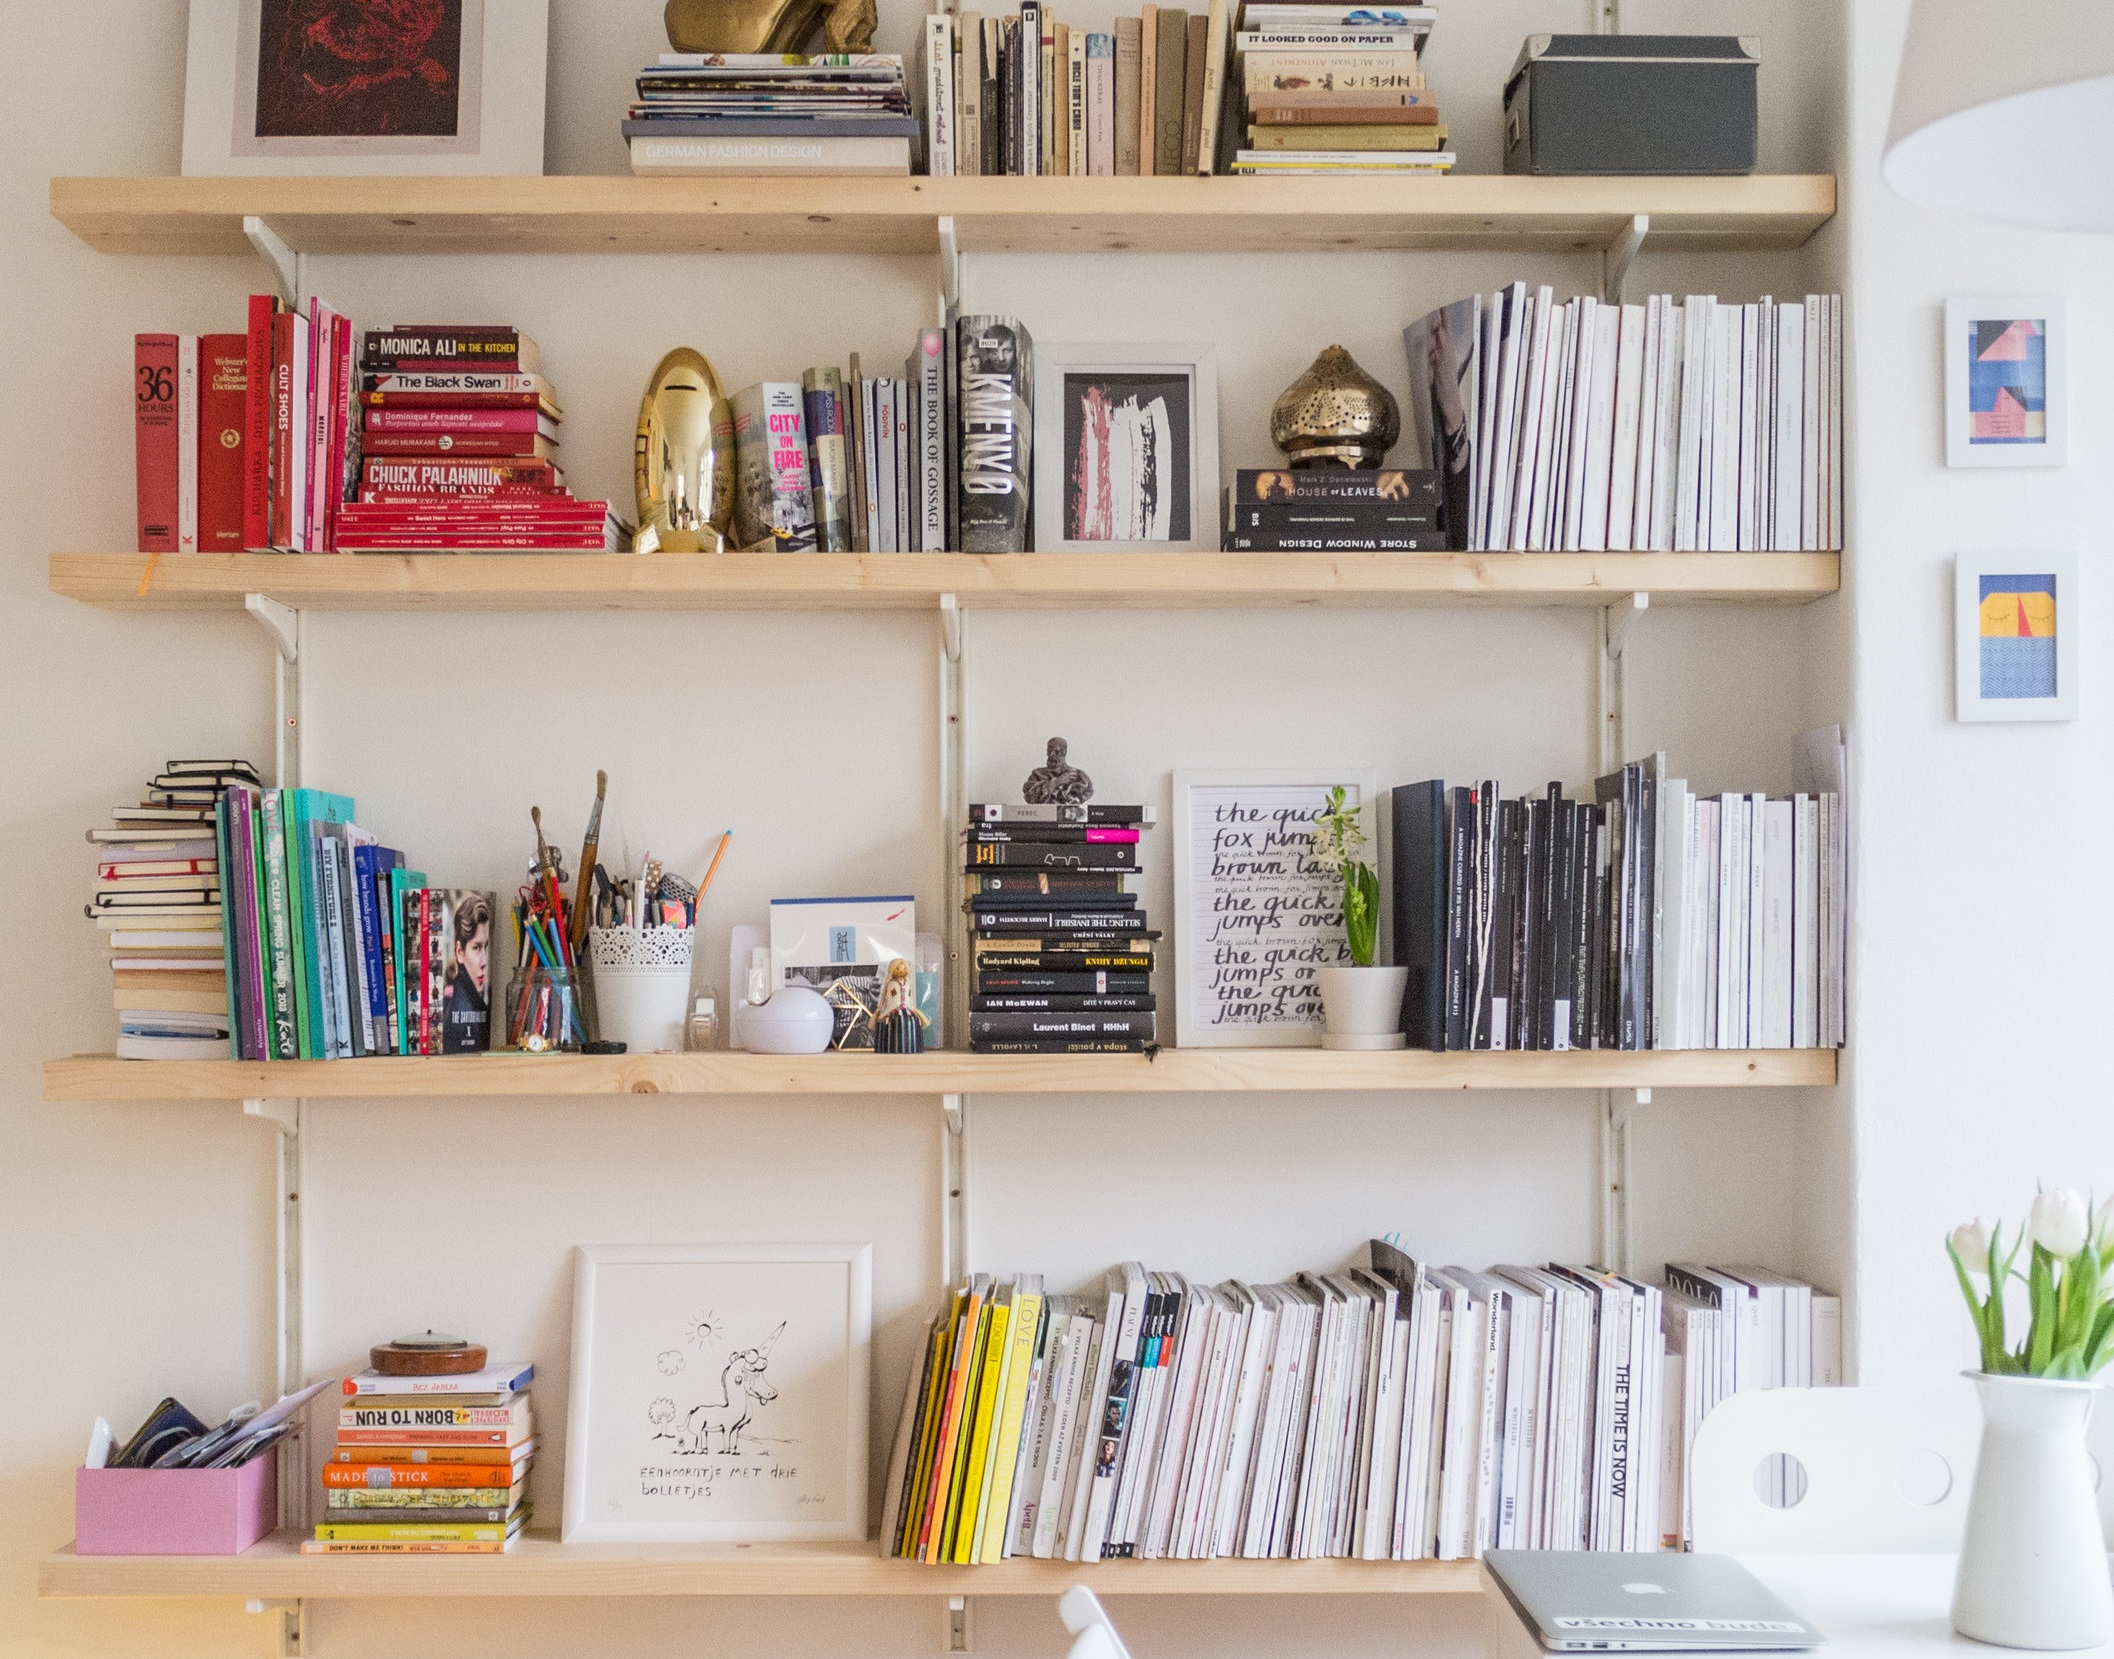 6. Do you want to reorganize the whole home? -